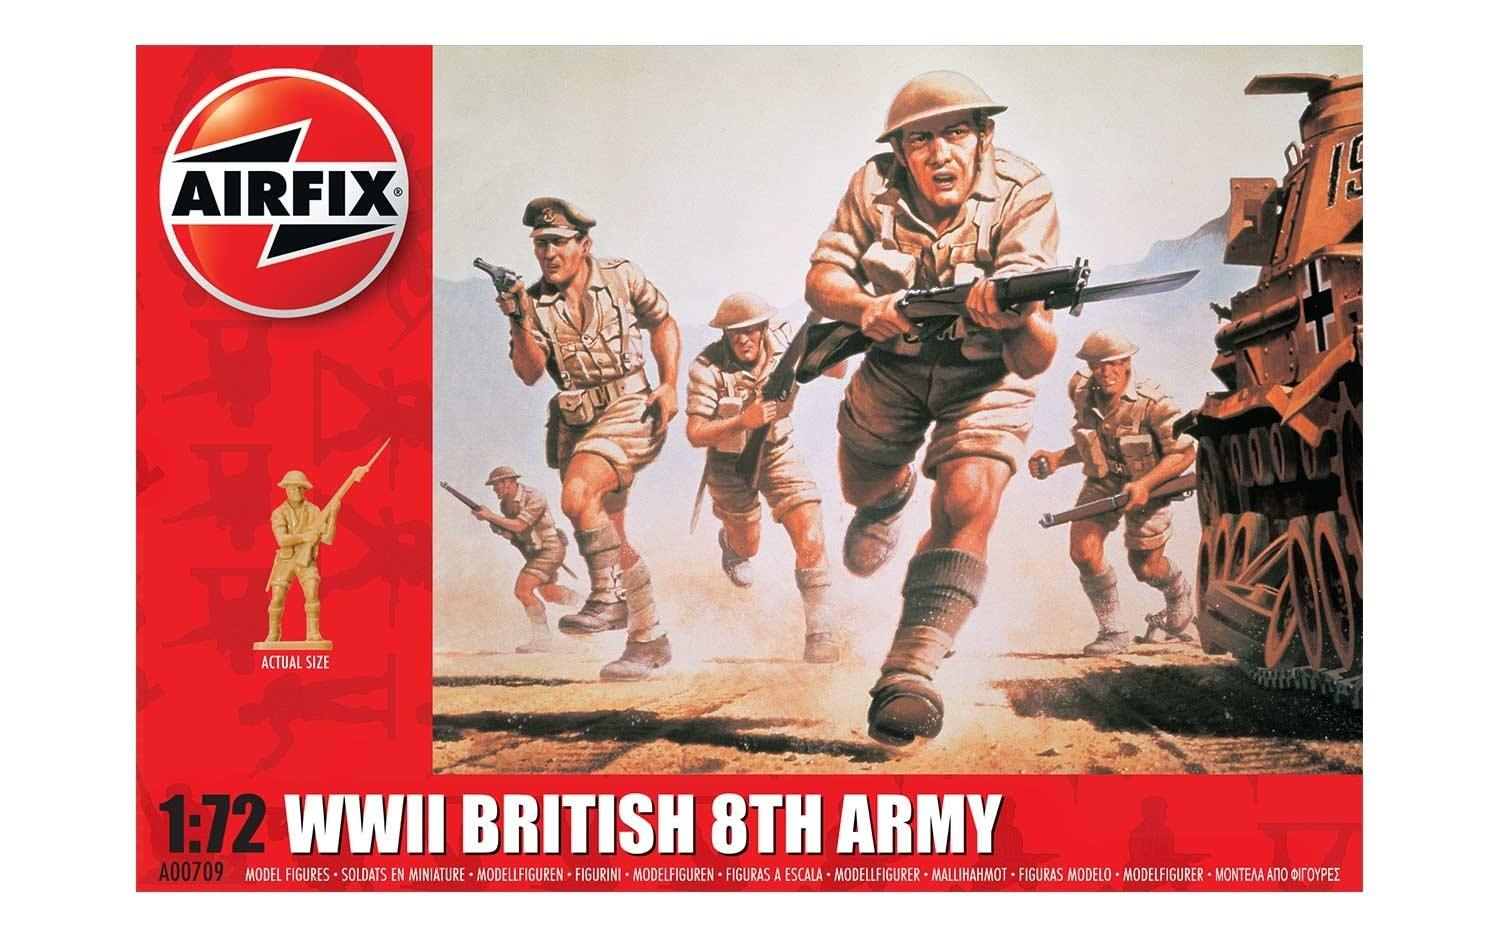 AIRFIX A00709 WWII British 8th Army Figures 1:72 scale kit